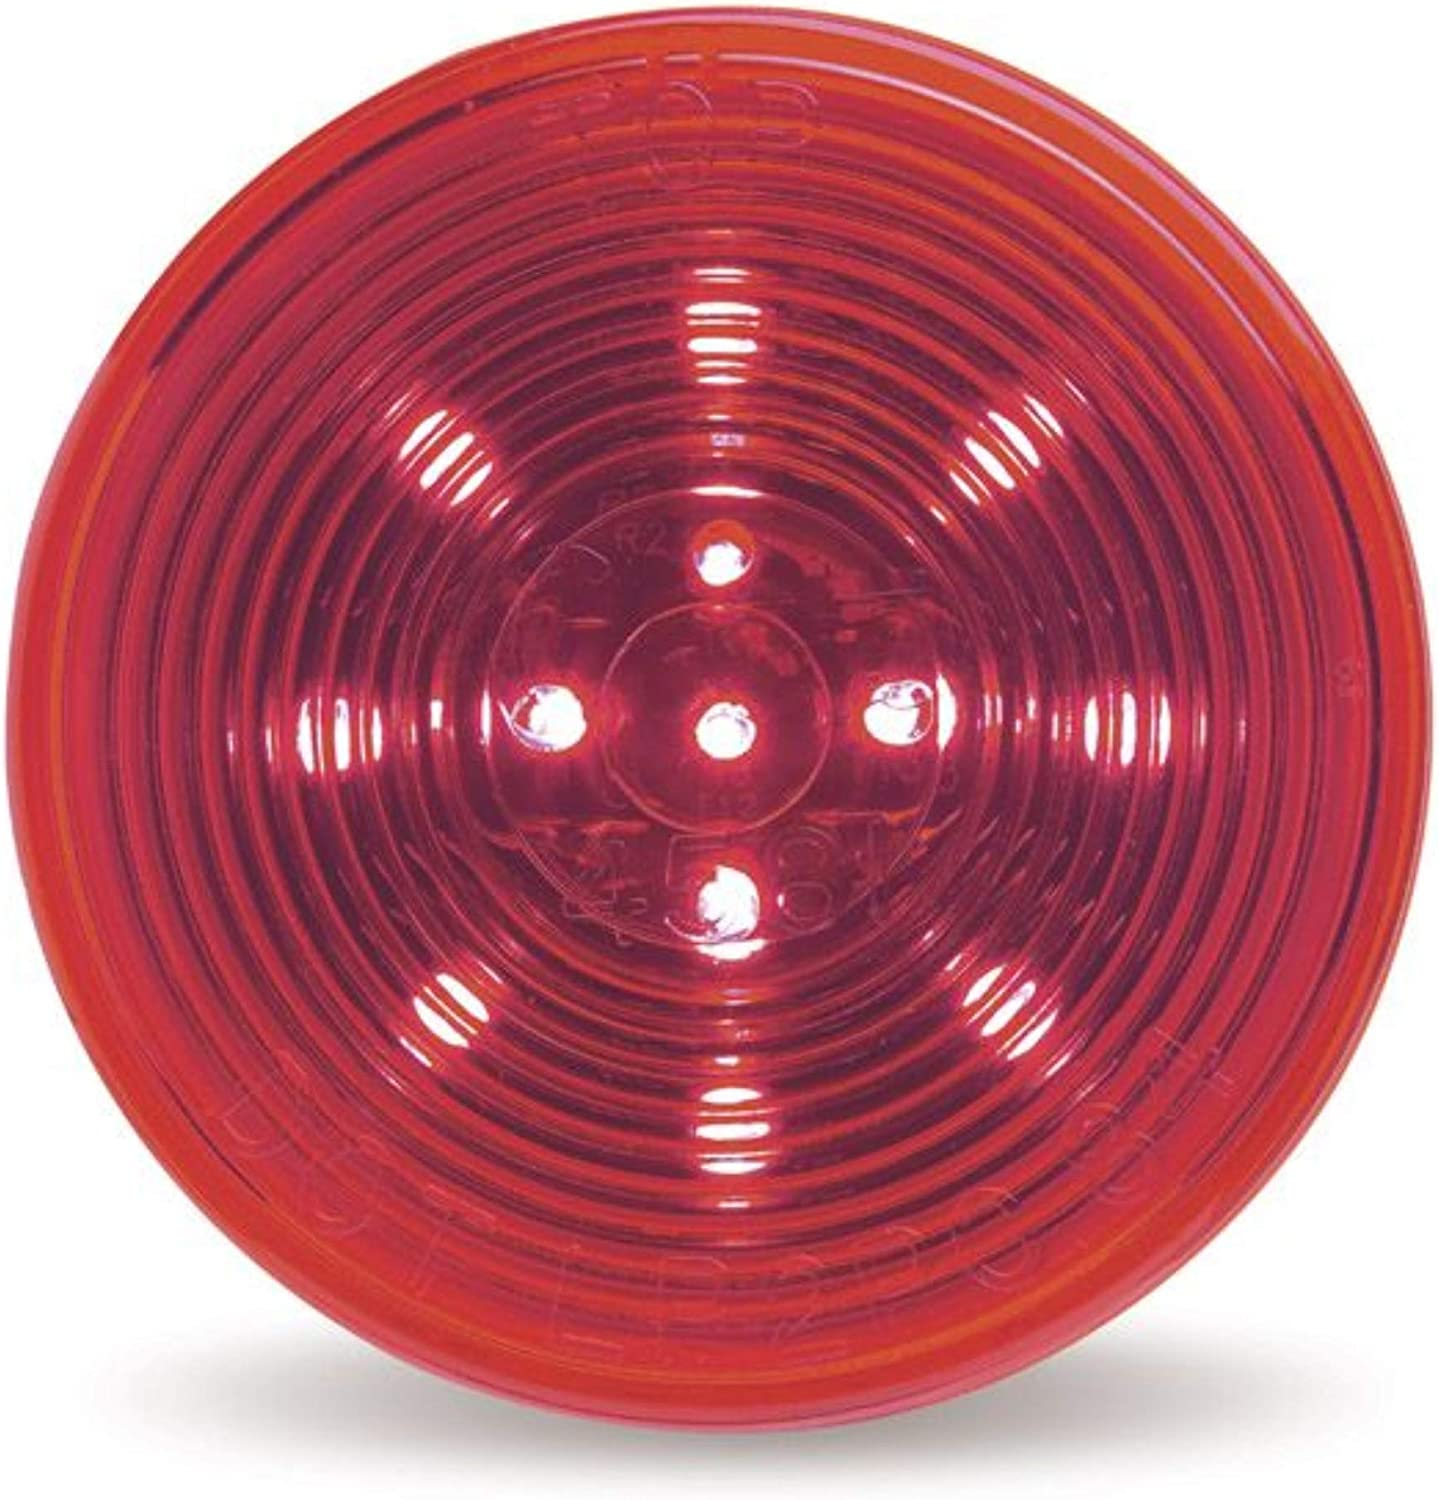 Optic Lens Grote Lamp LED Red 2.5 in